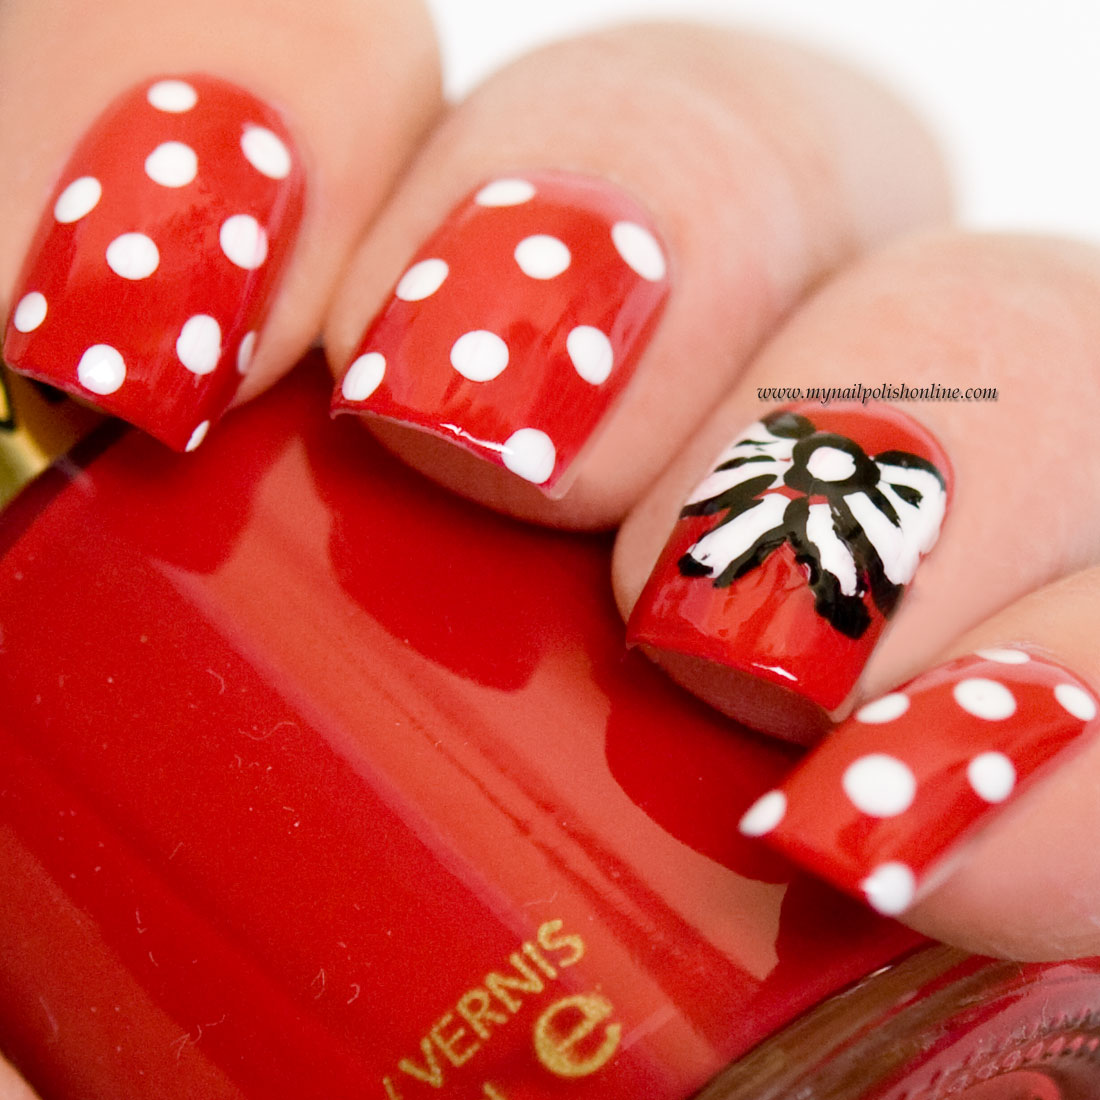 Nail Art - Dotticure with a bow